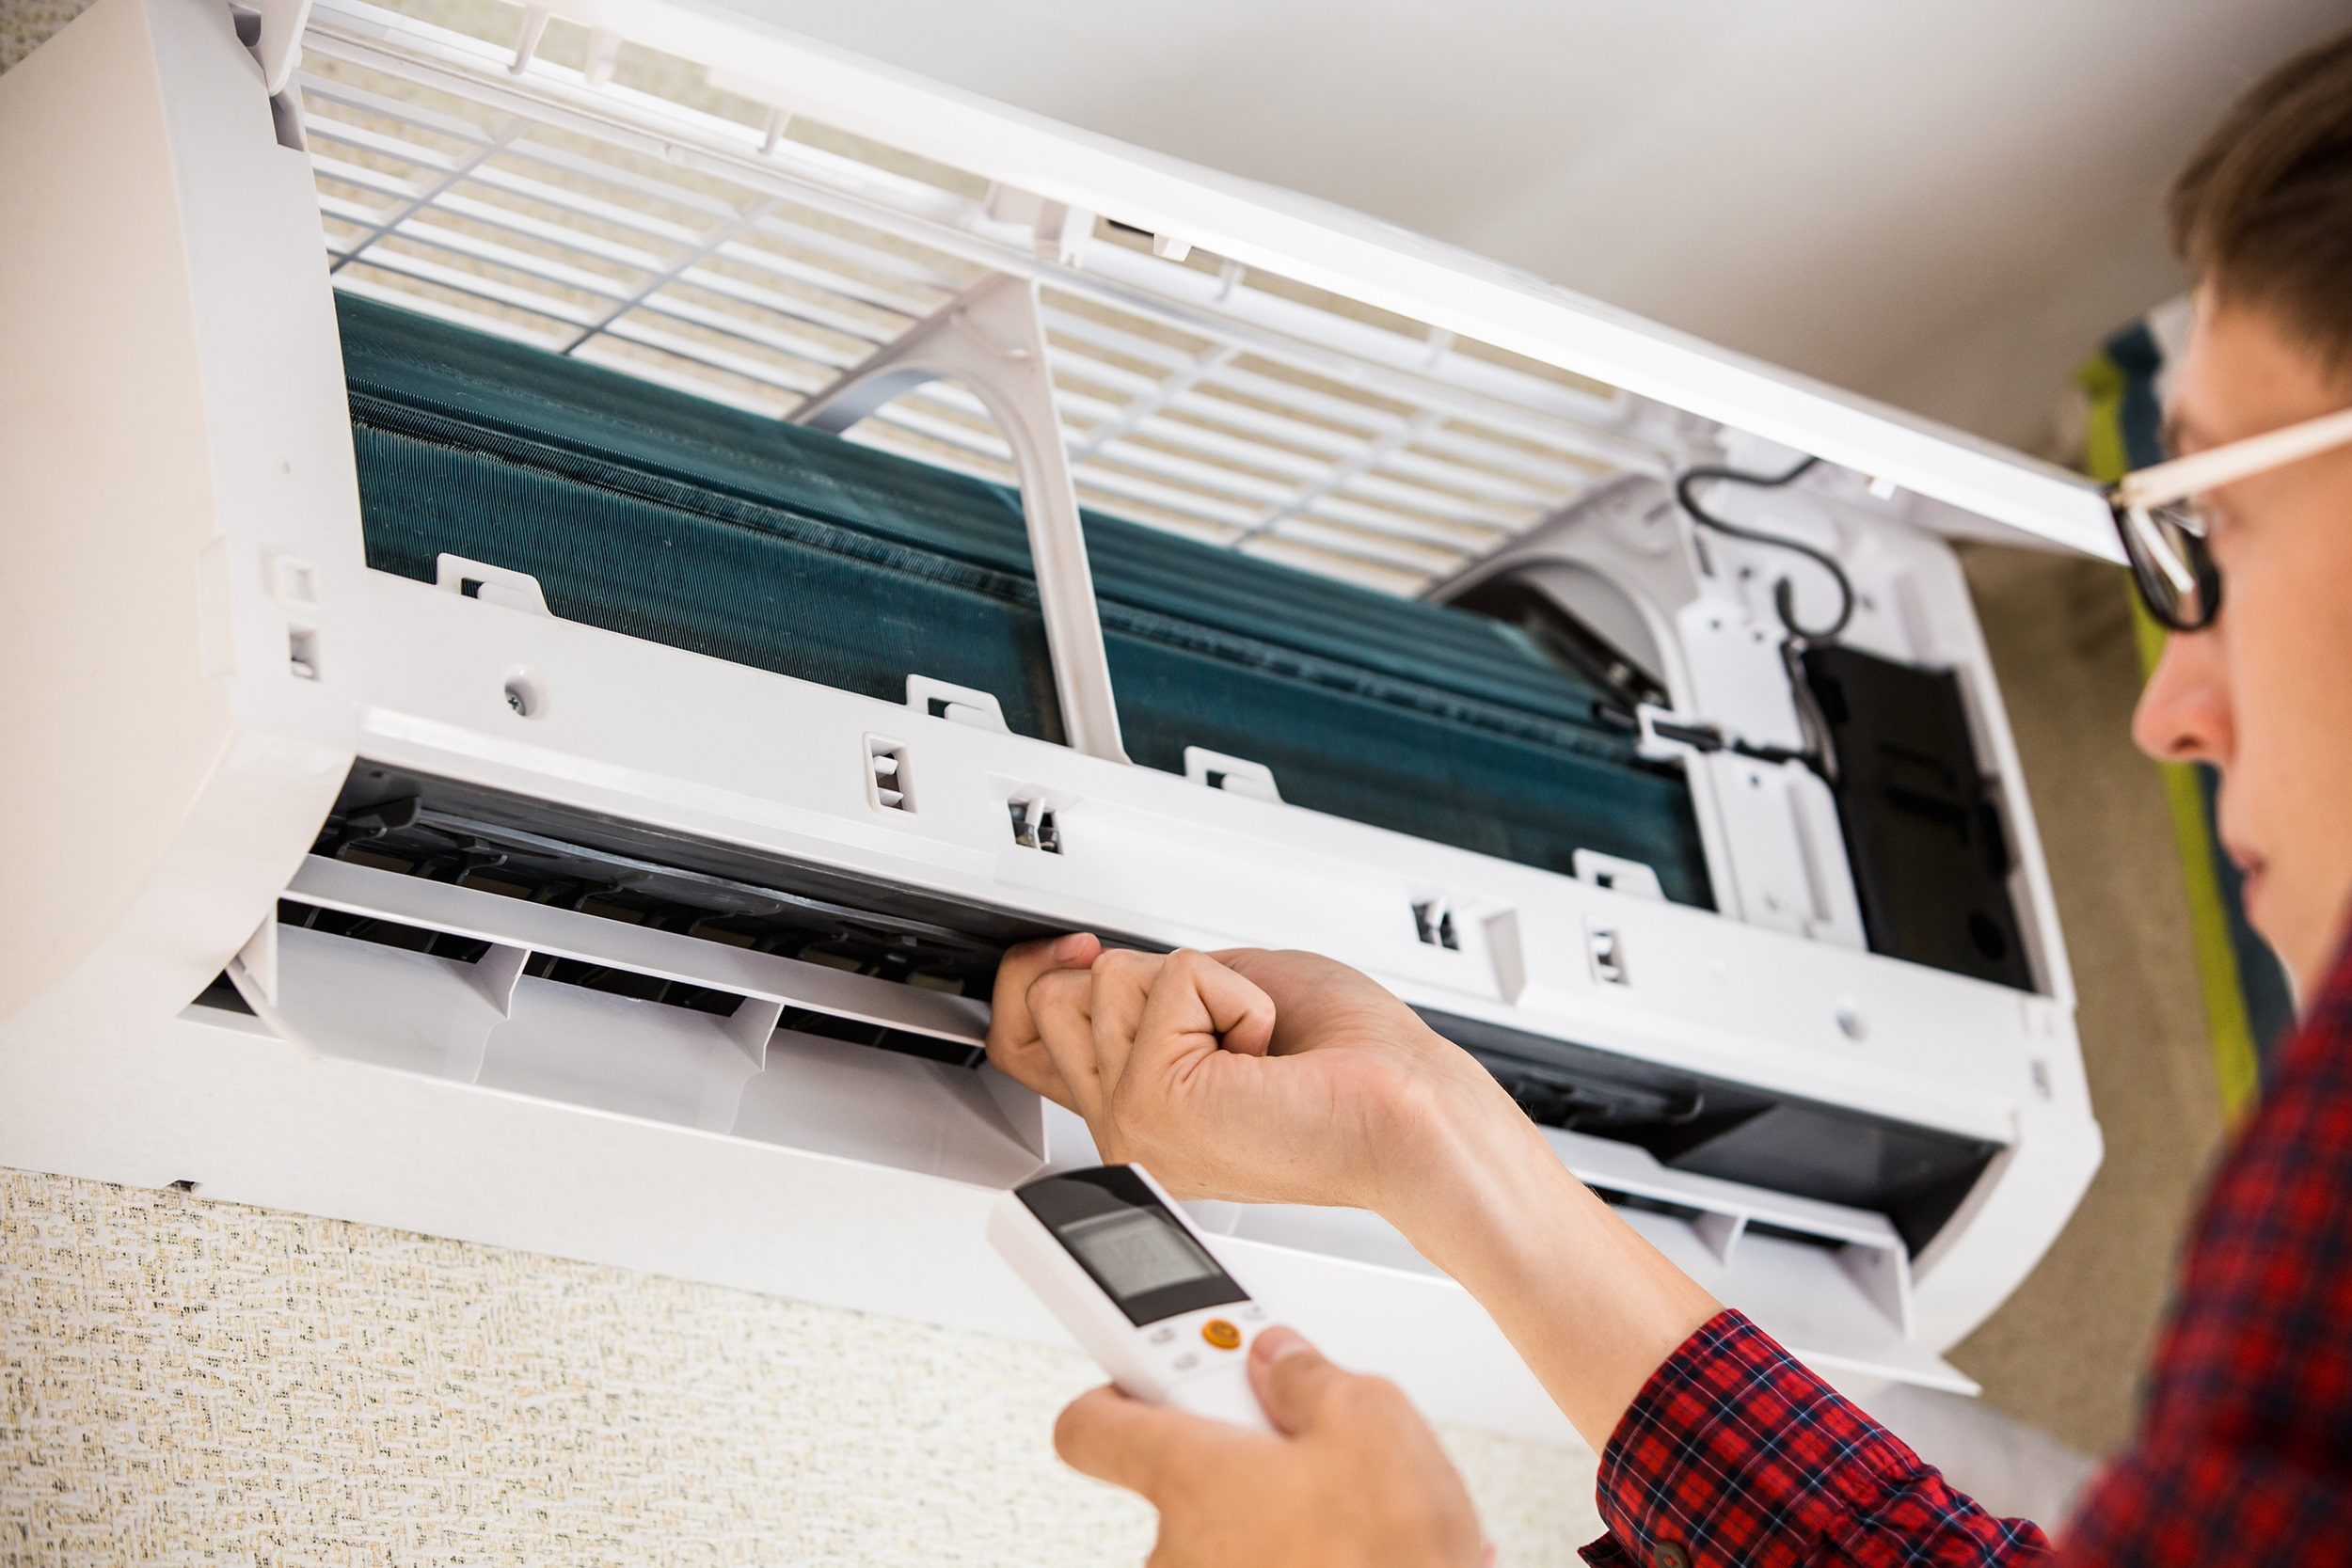 What you should do if you have an emergency HVAC issue